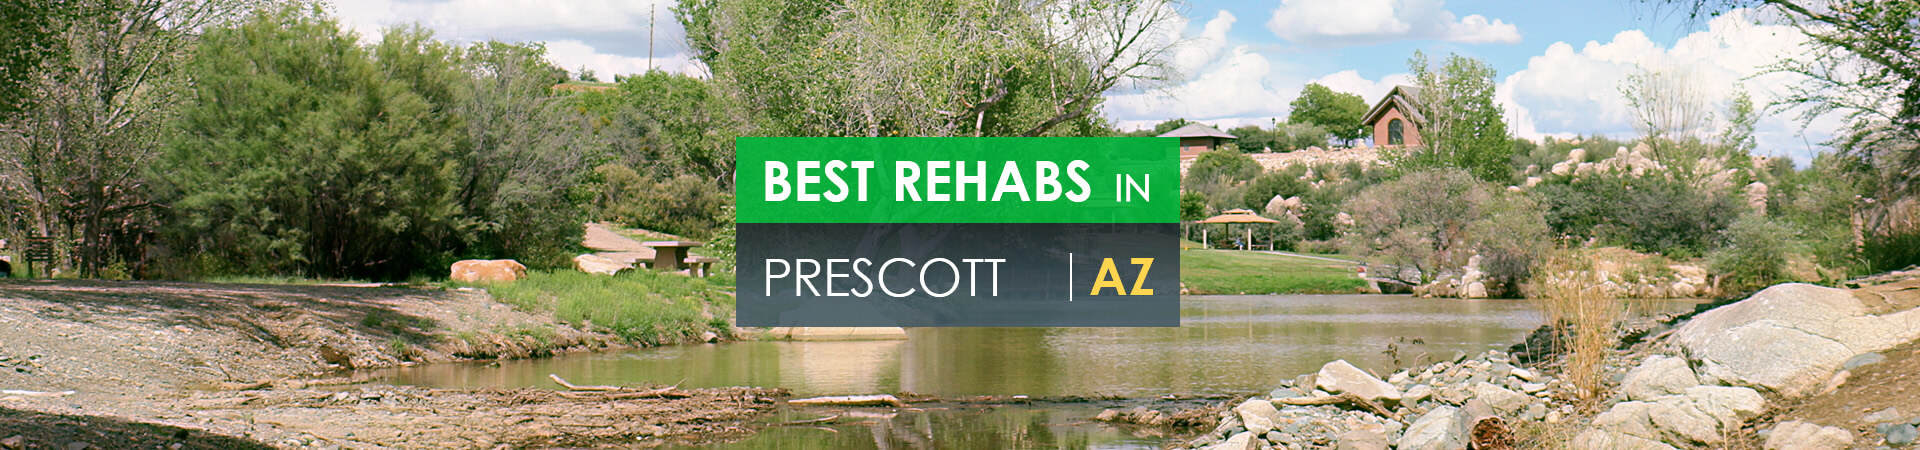 Best rehabs in Prescott, AZ